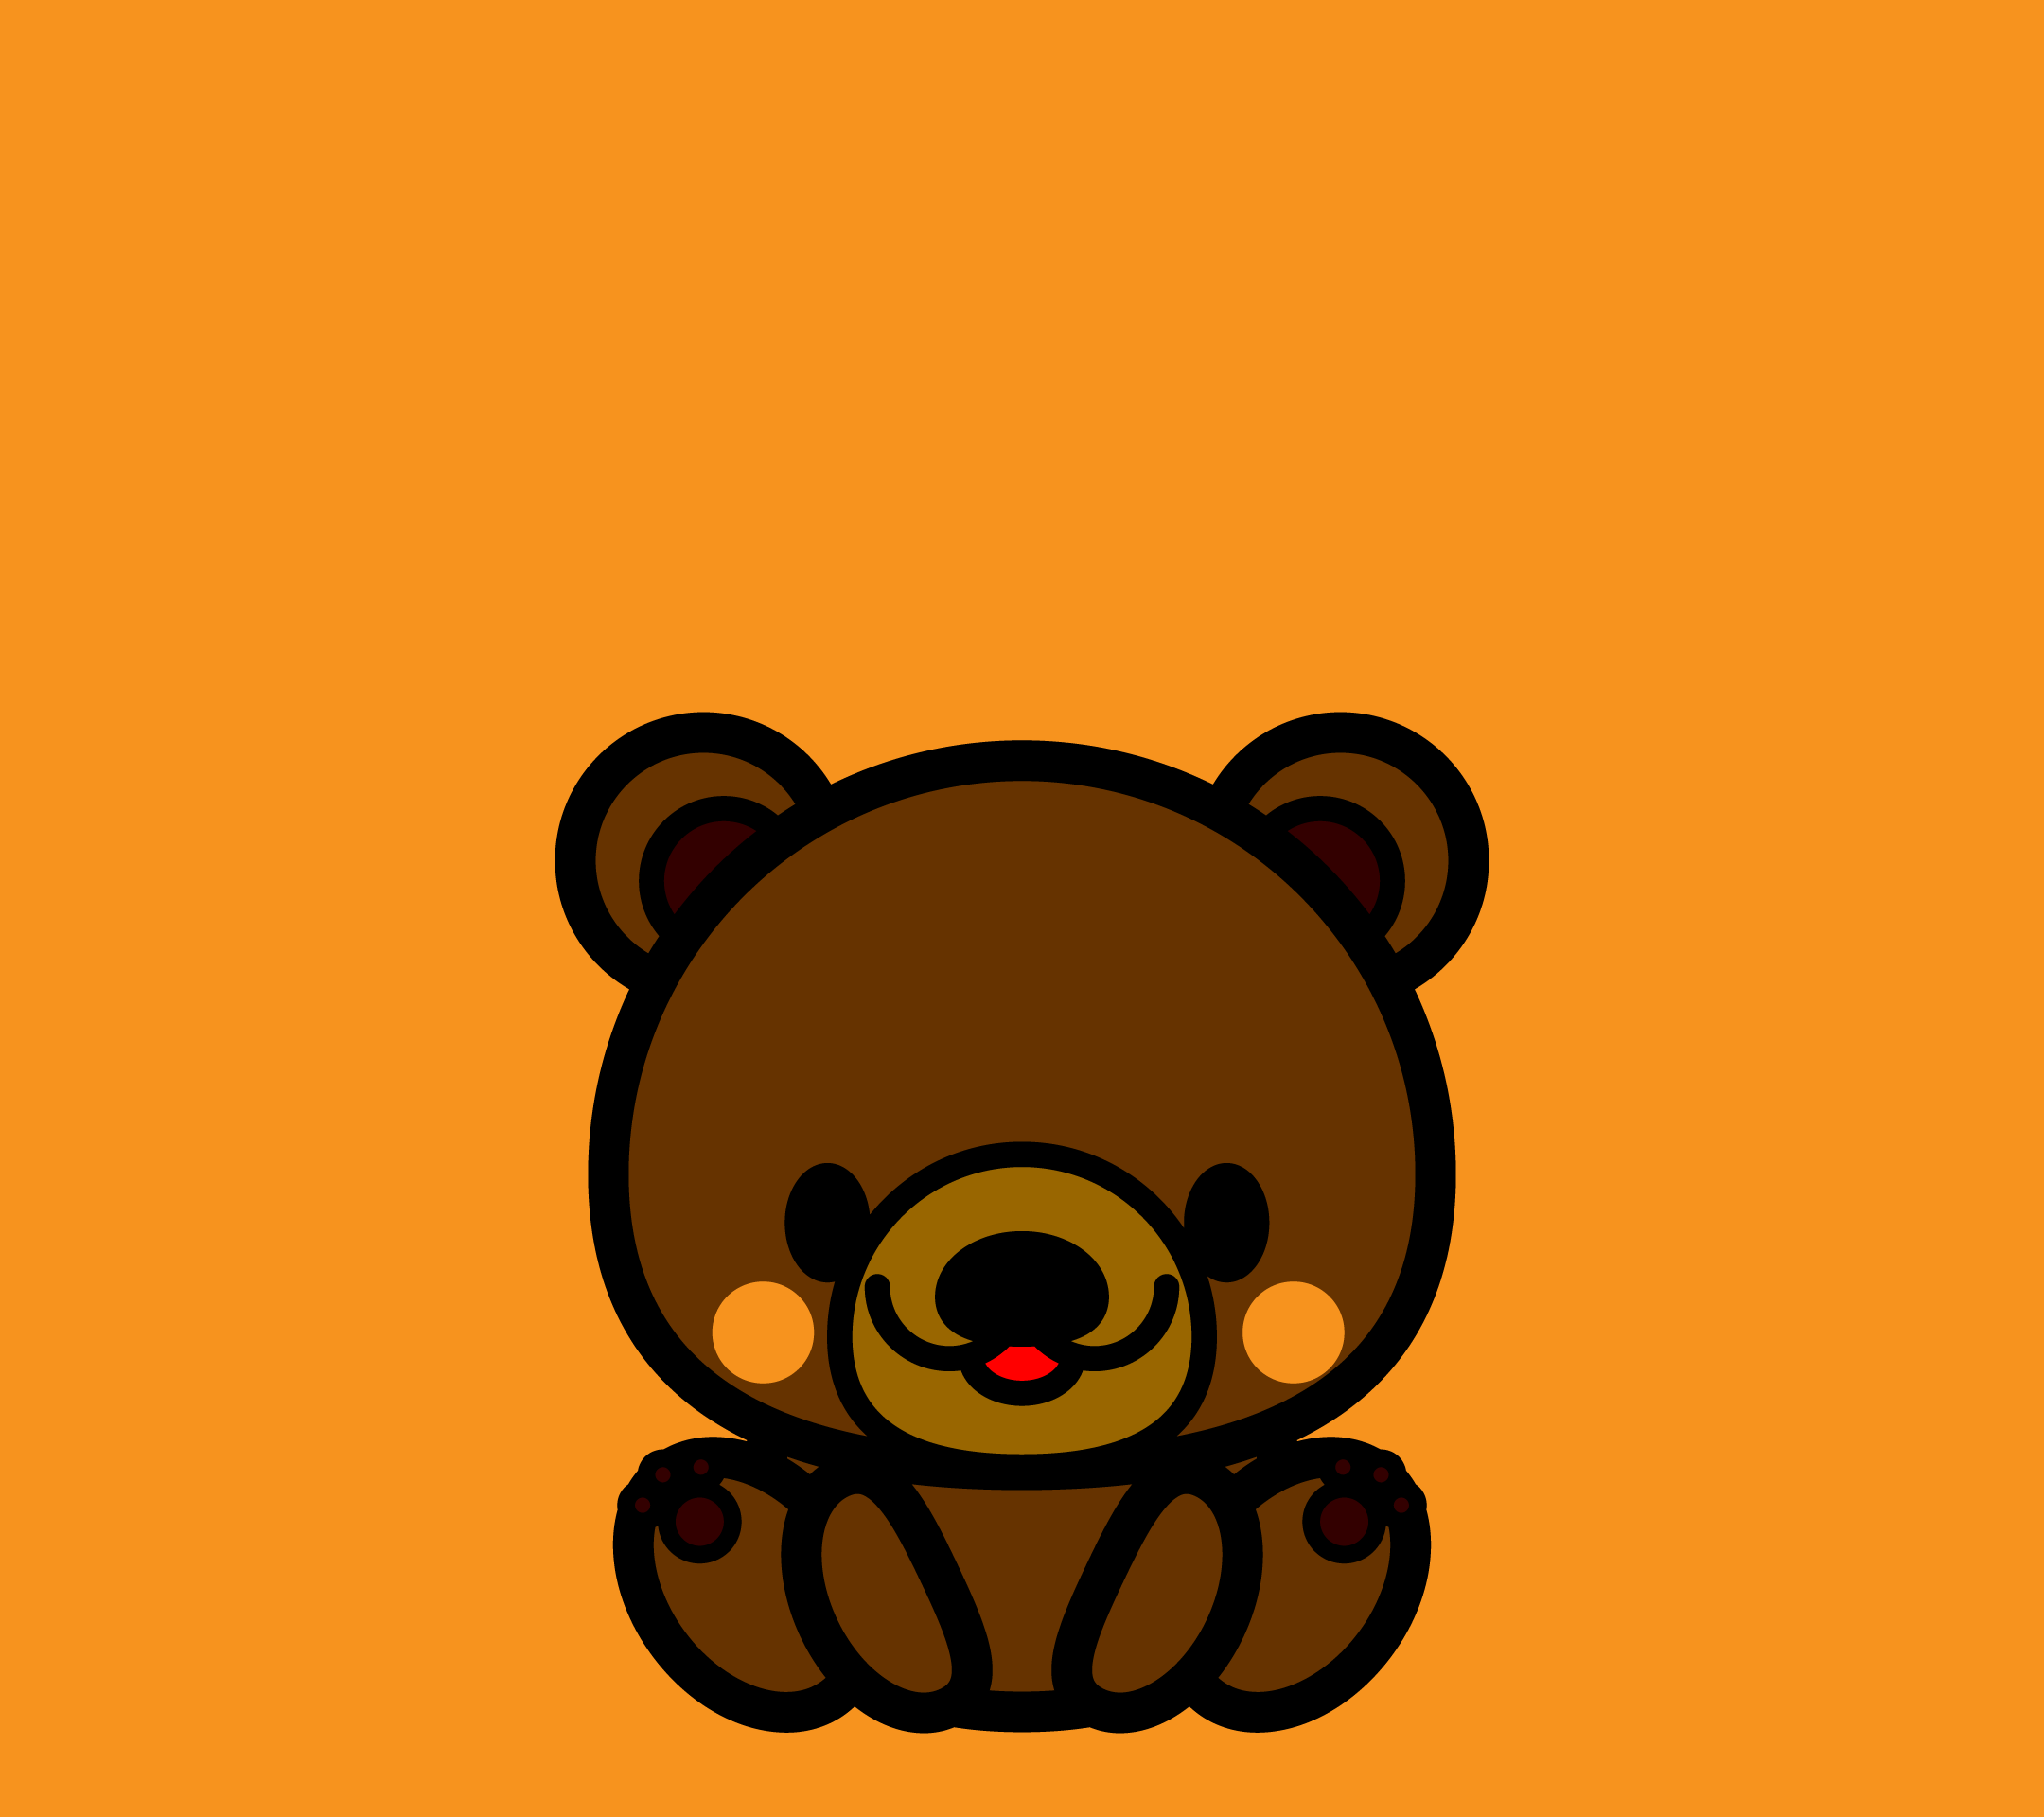 wallpaper3_sitbear-orange-android